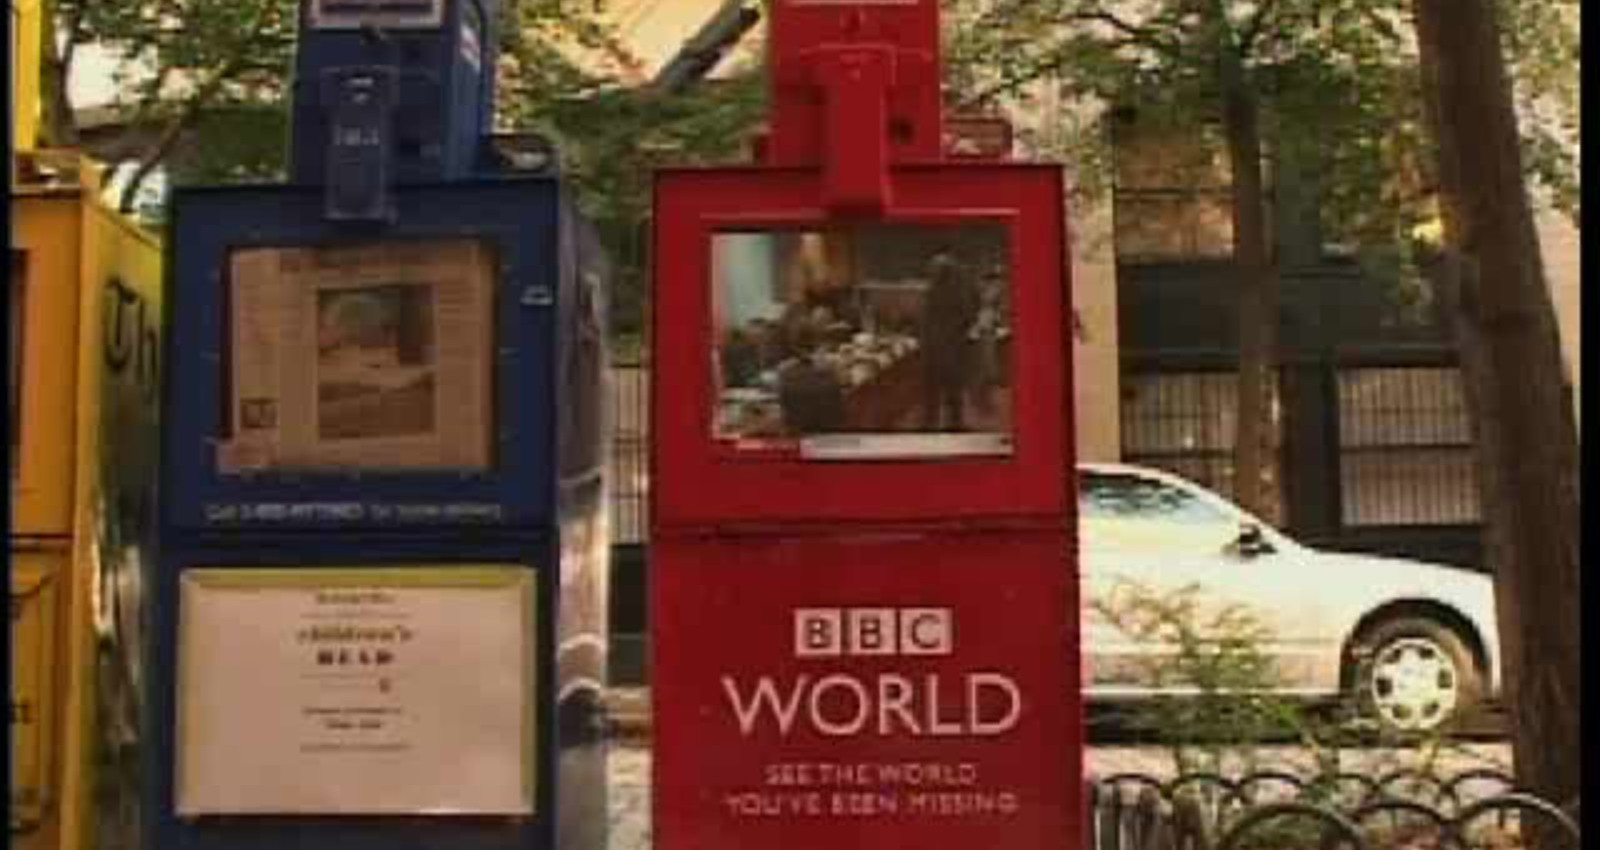 BBC Newspaper Boxes